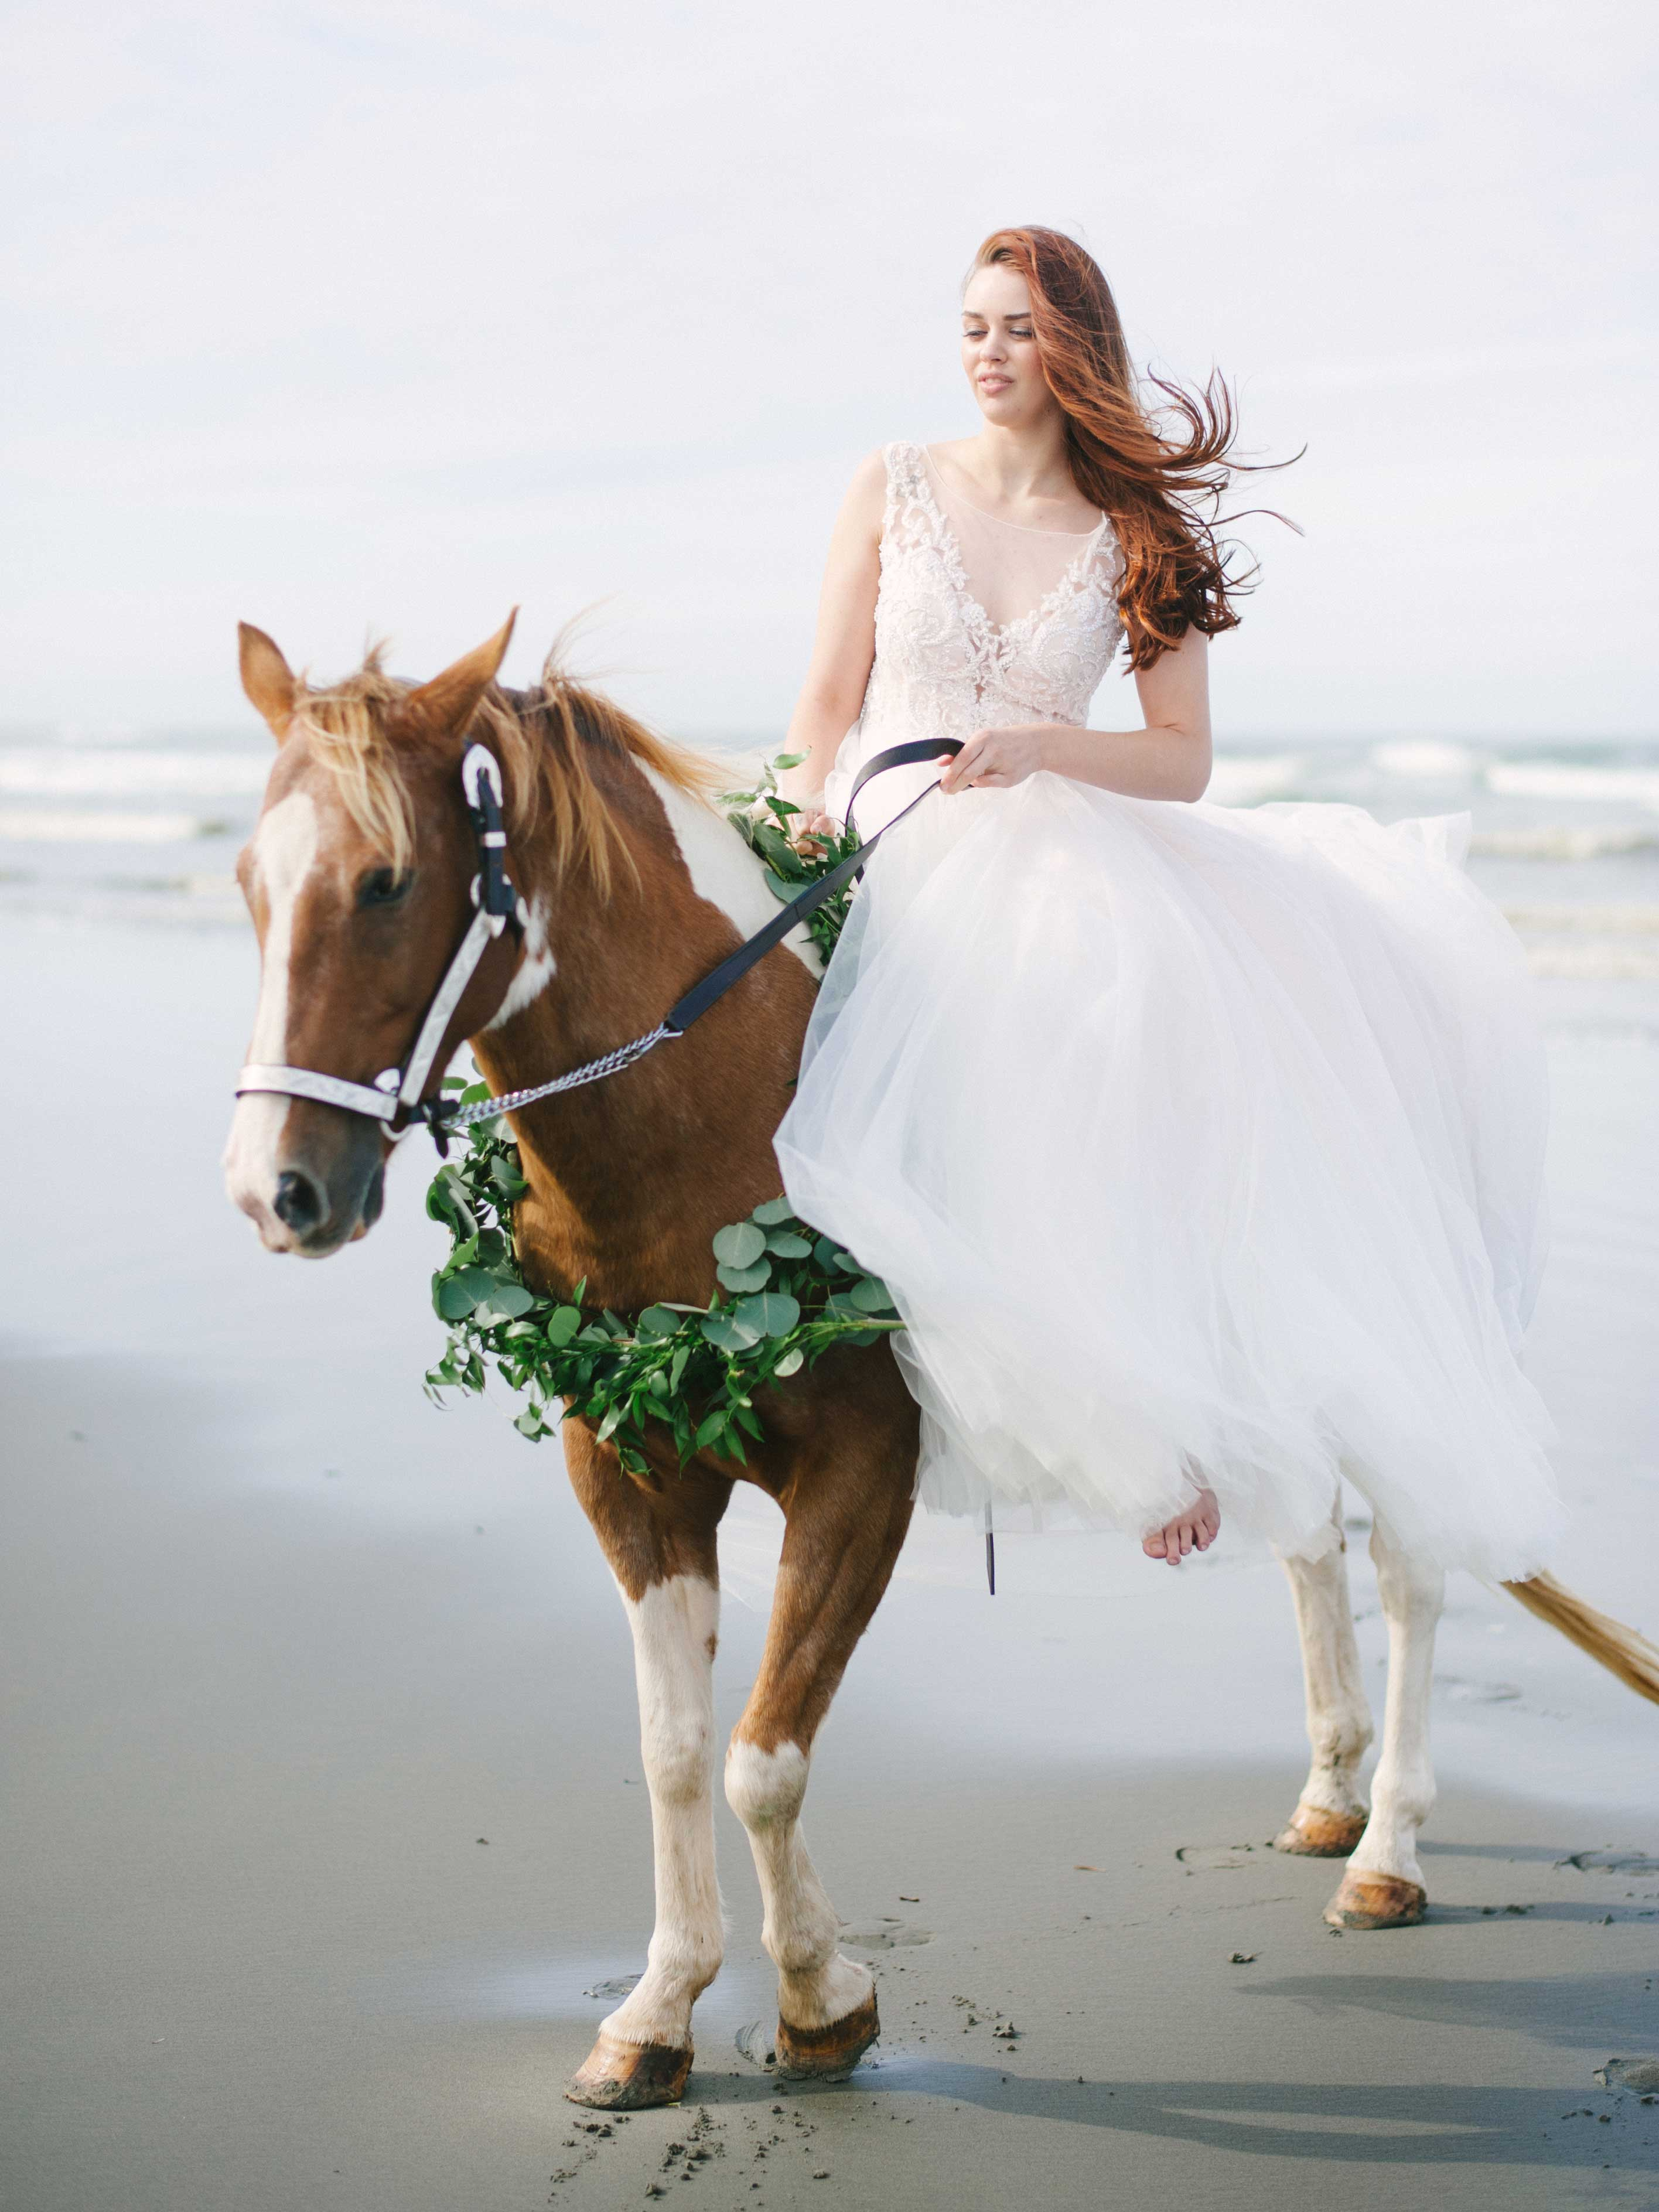 Greenery wreath around horse neck on beach bride transportation